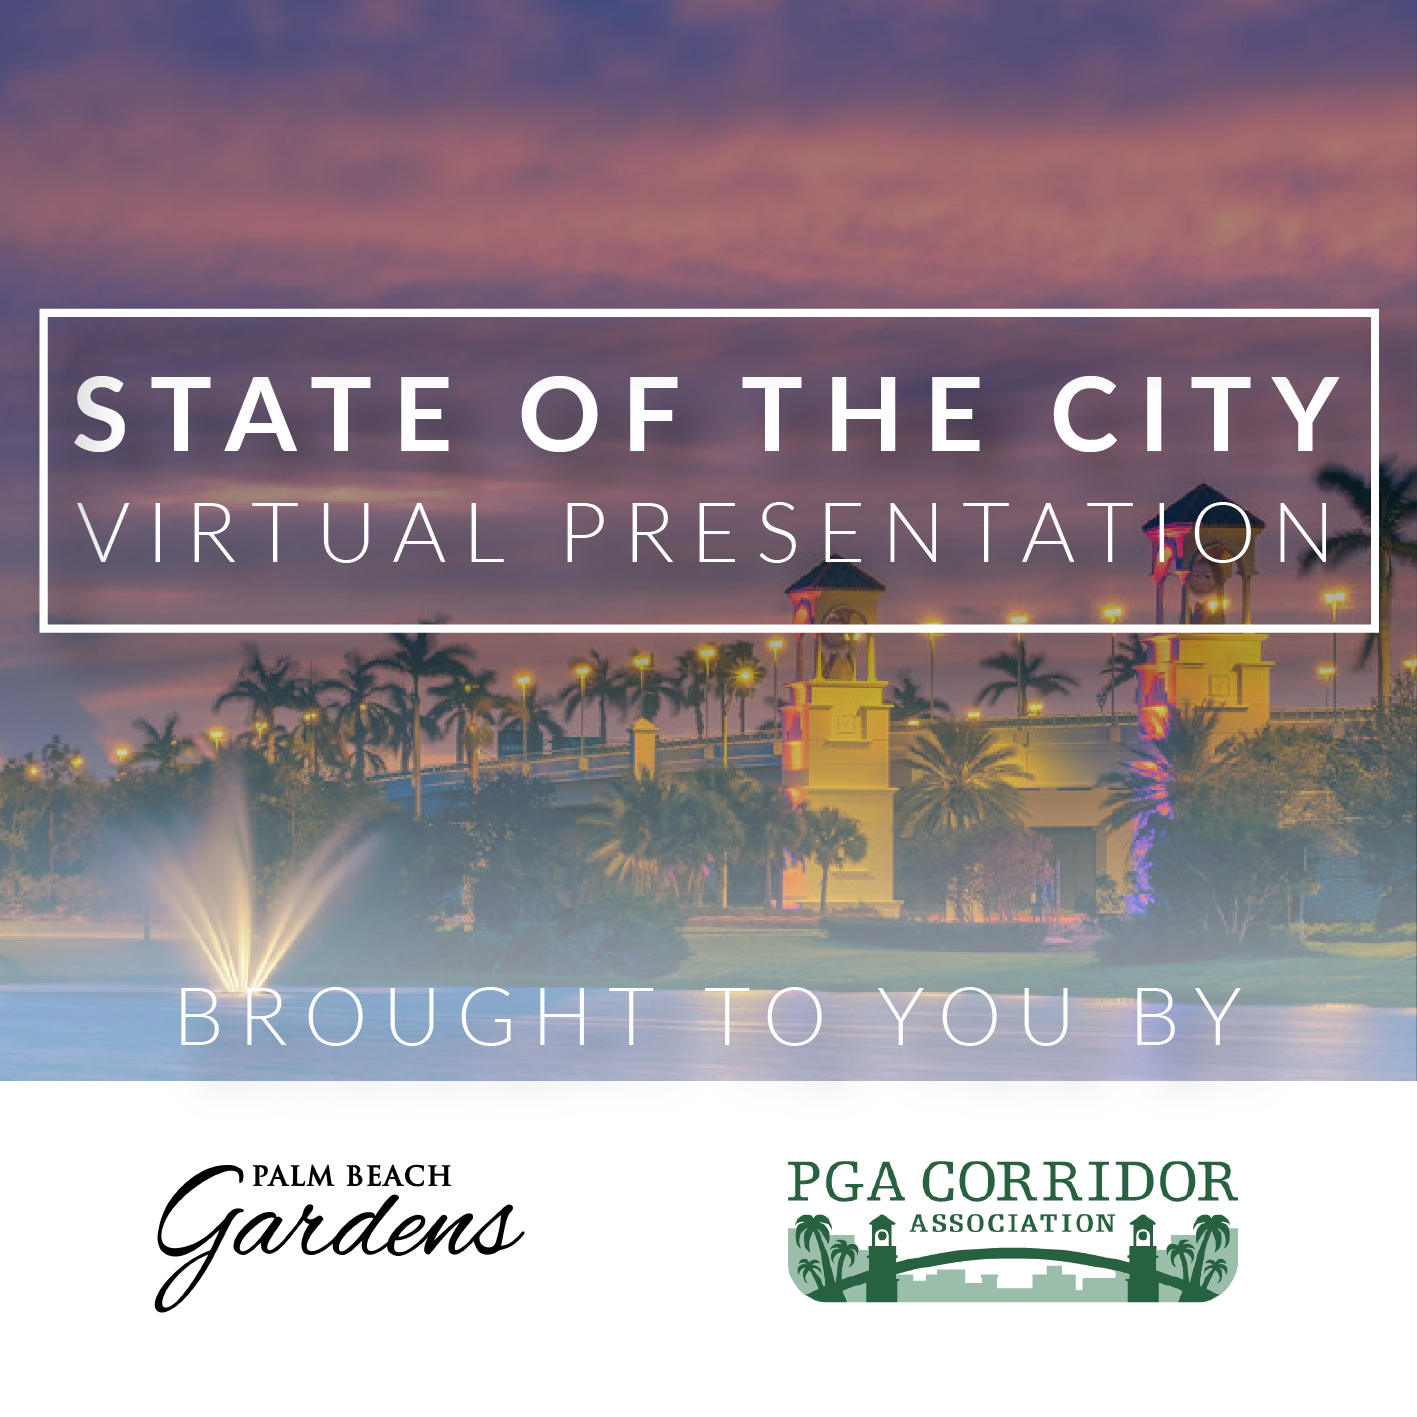 State of the City video link.